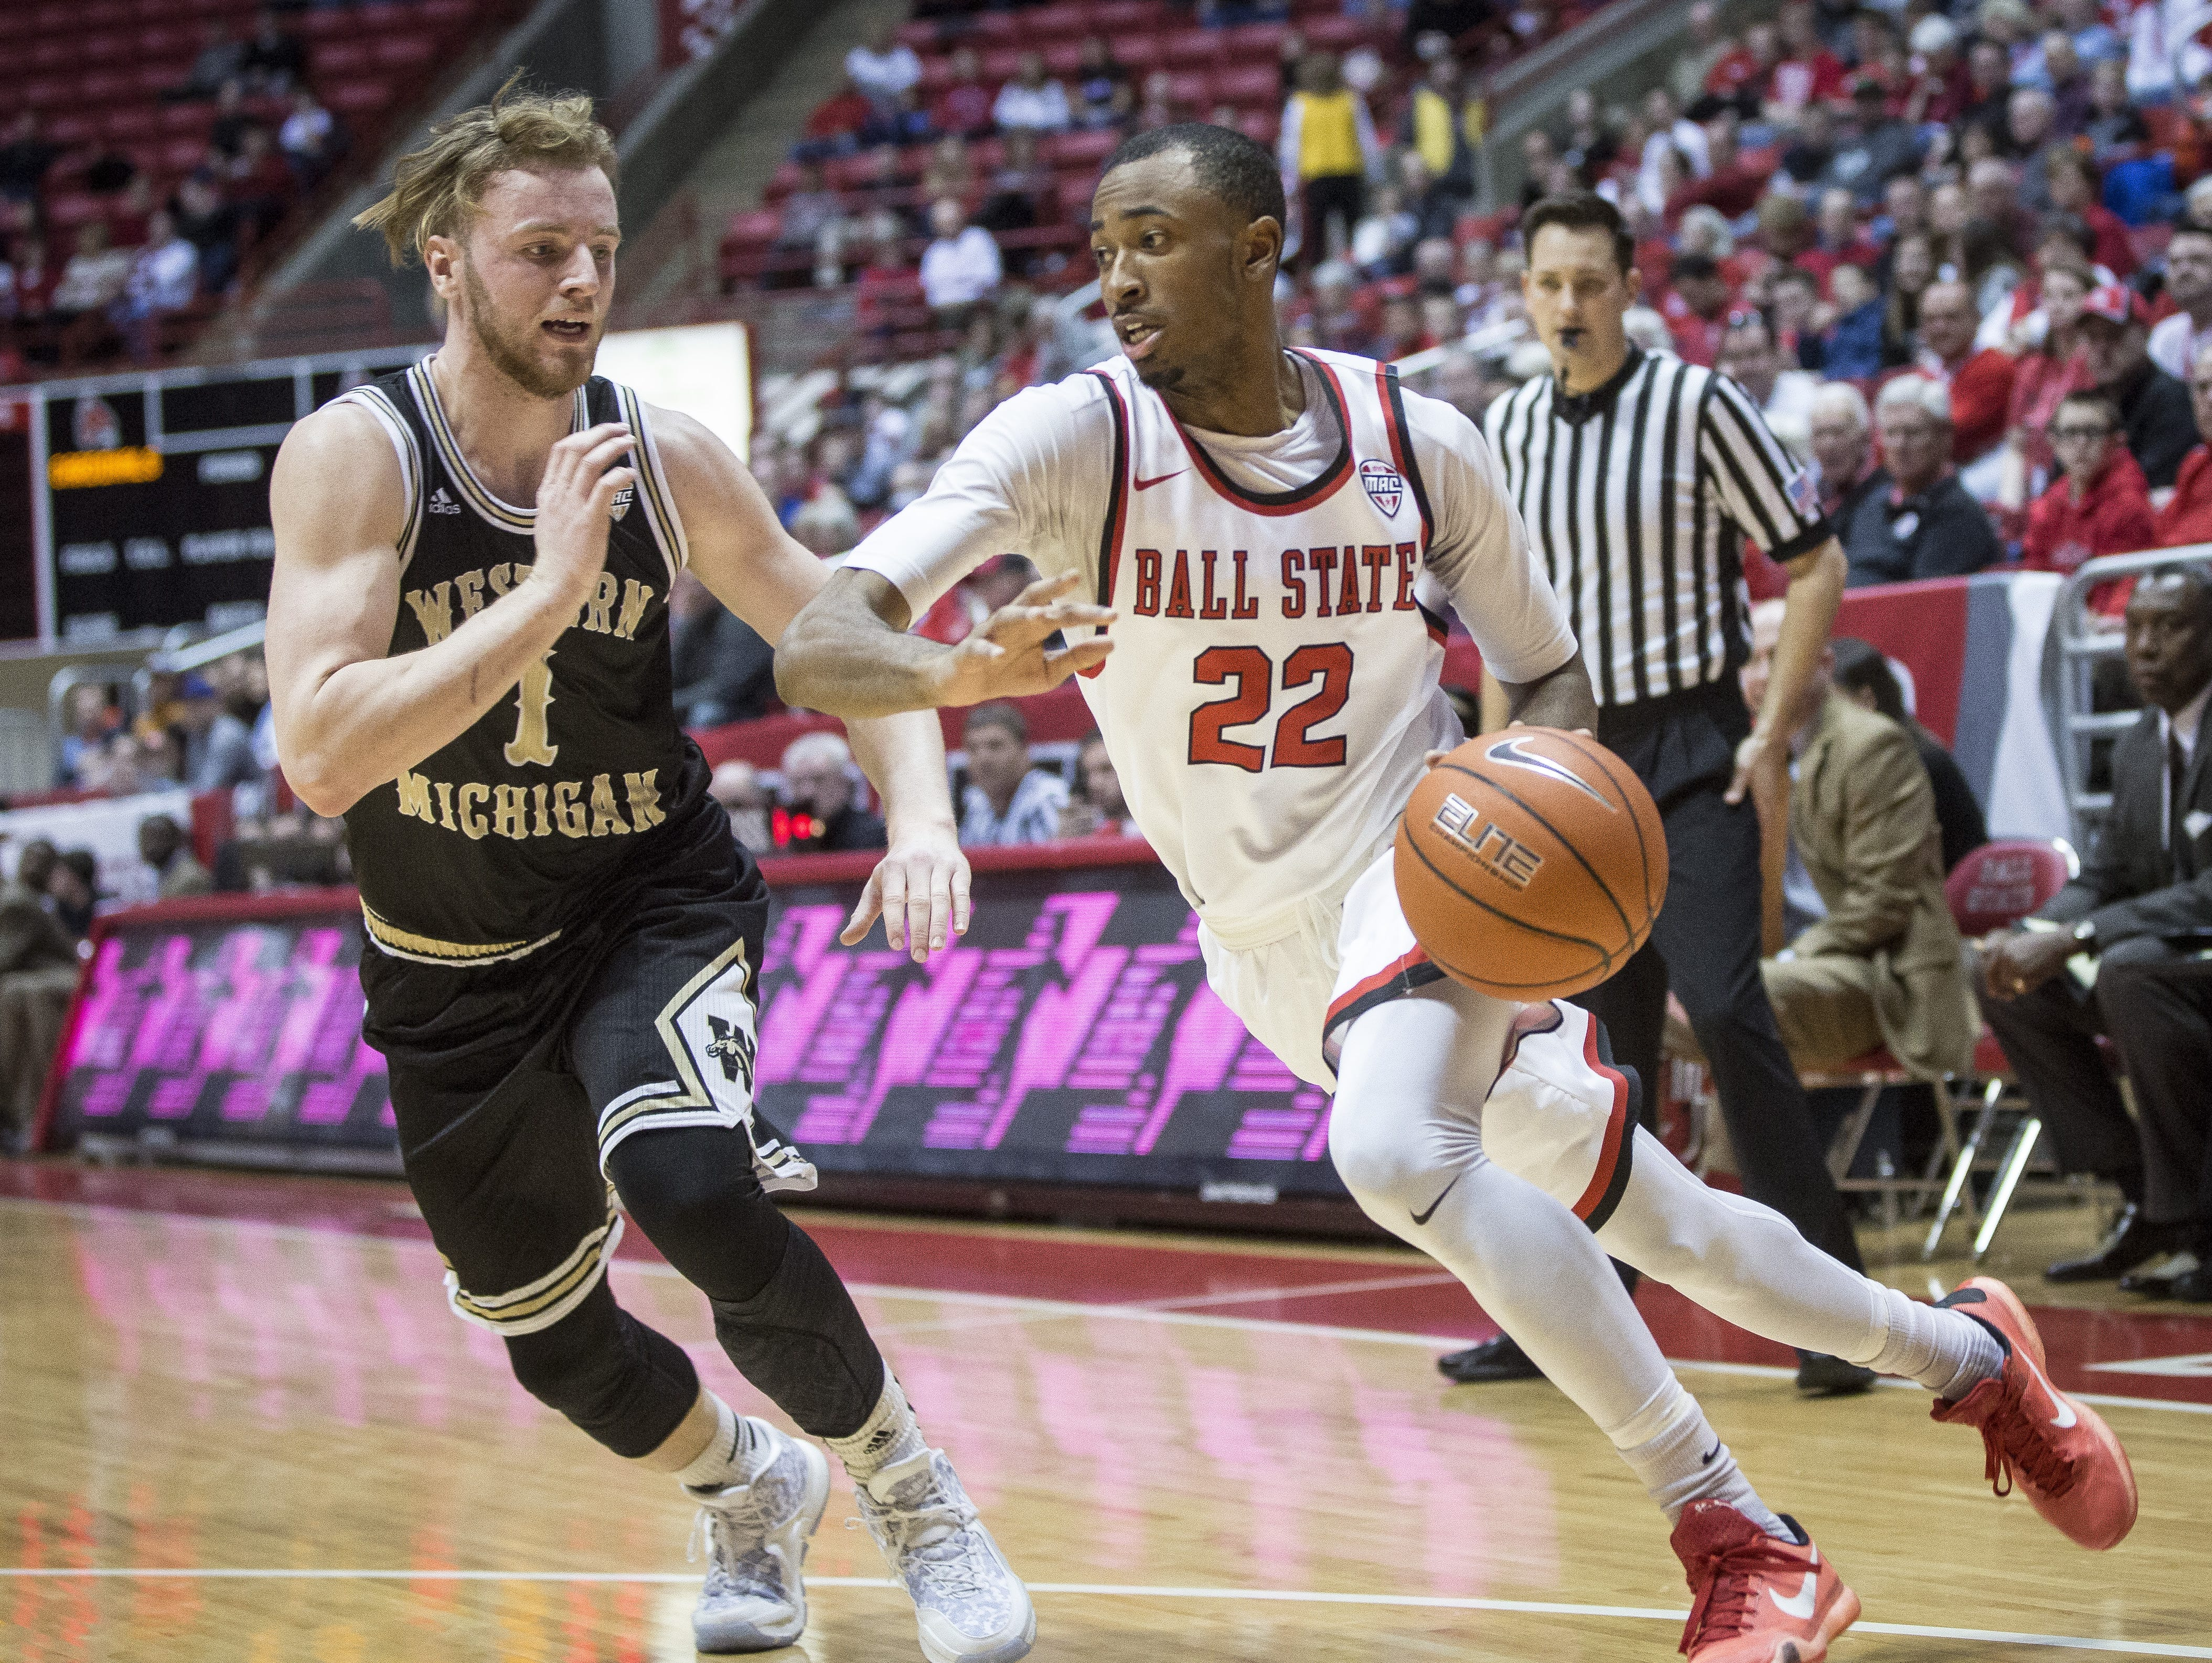 Ball State's Jeremie Tyler moves in to take the shot during a home game against Western Michigan on Saturday. Ball State defeated Western Michigan 75-71 in overtime.